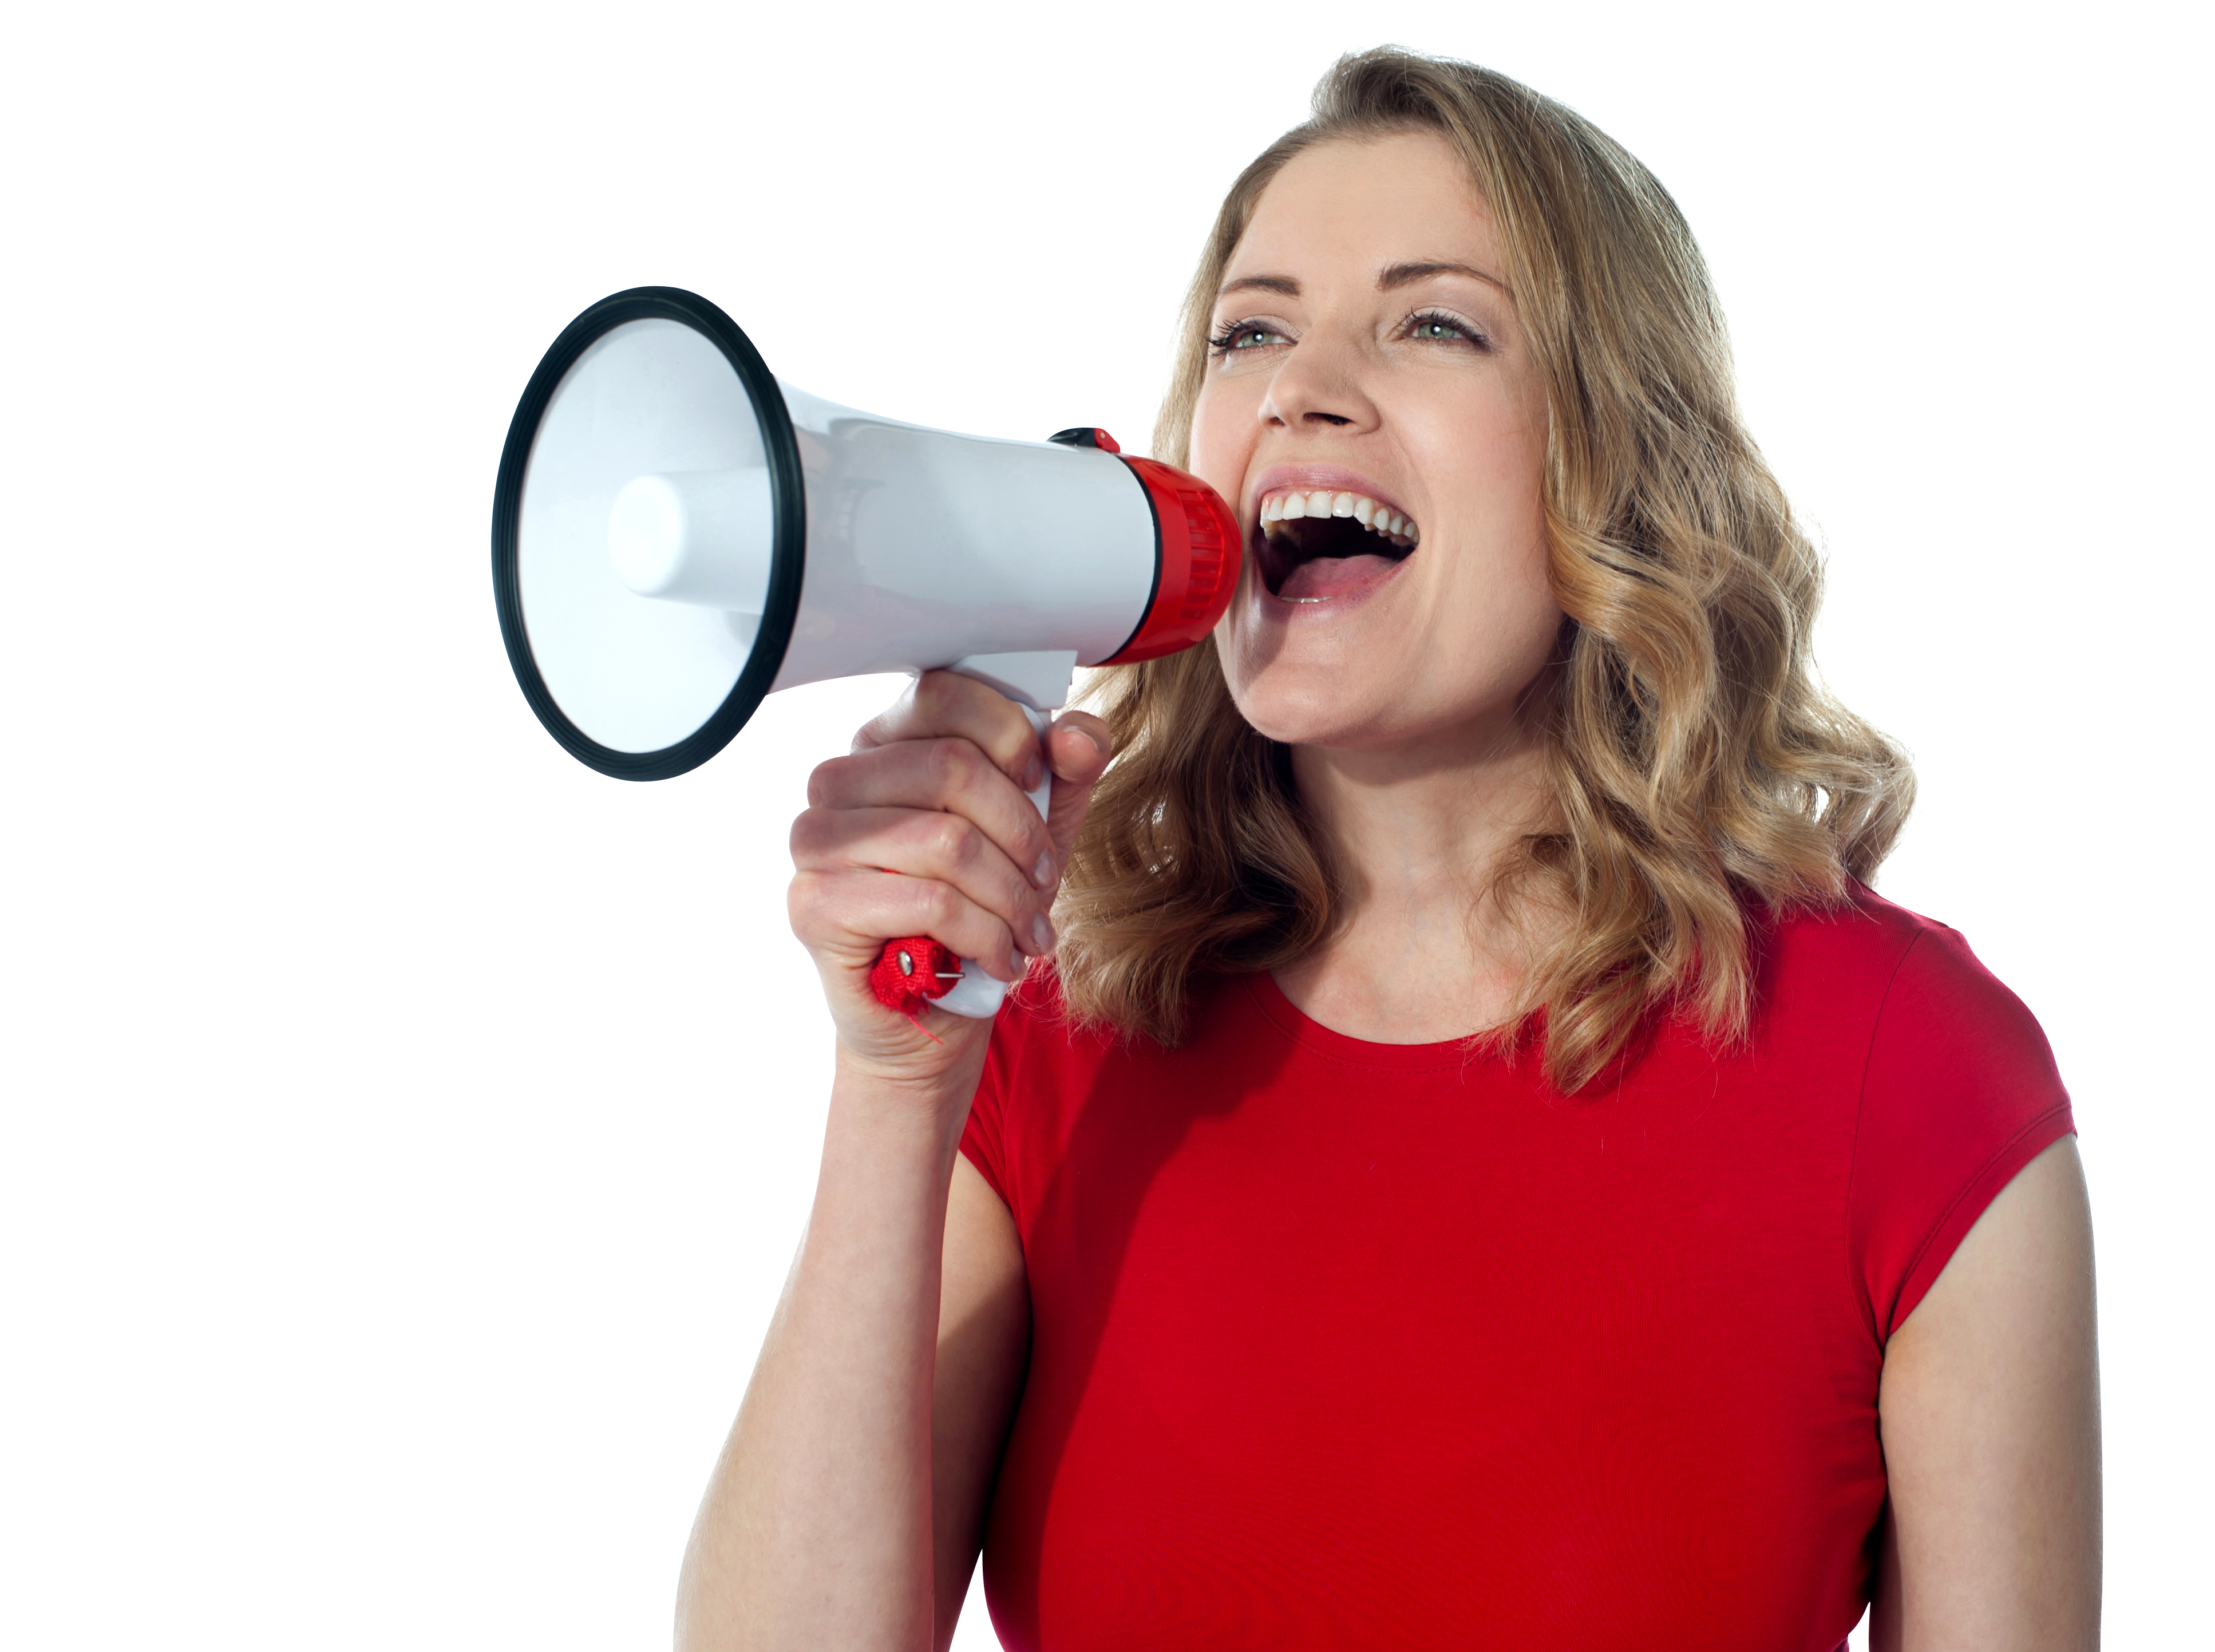 Women singing png. Stock photography female screaming